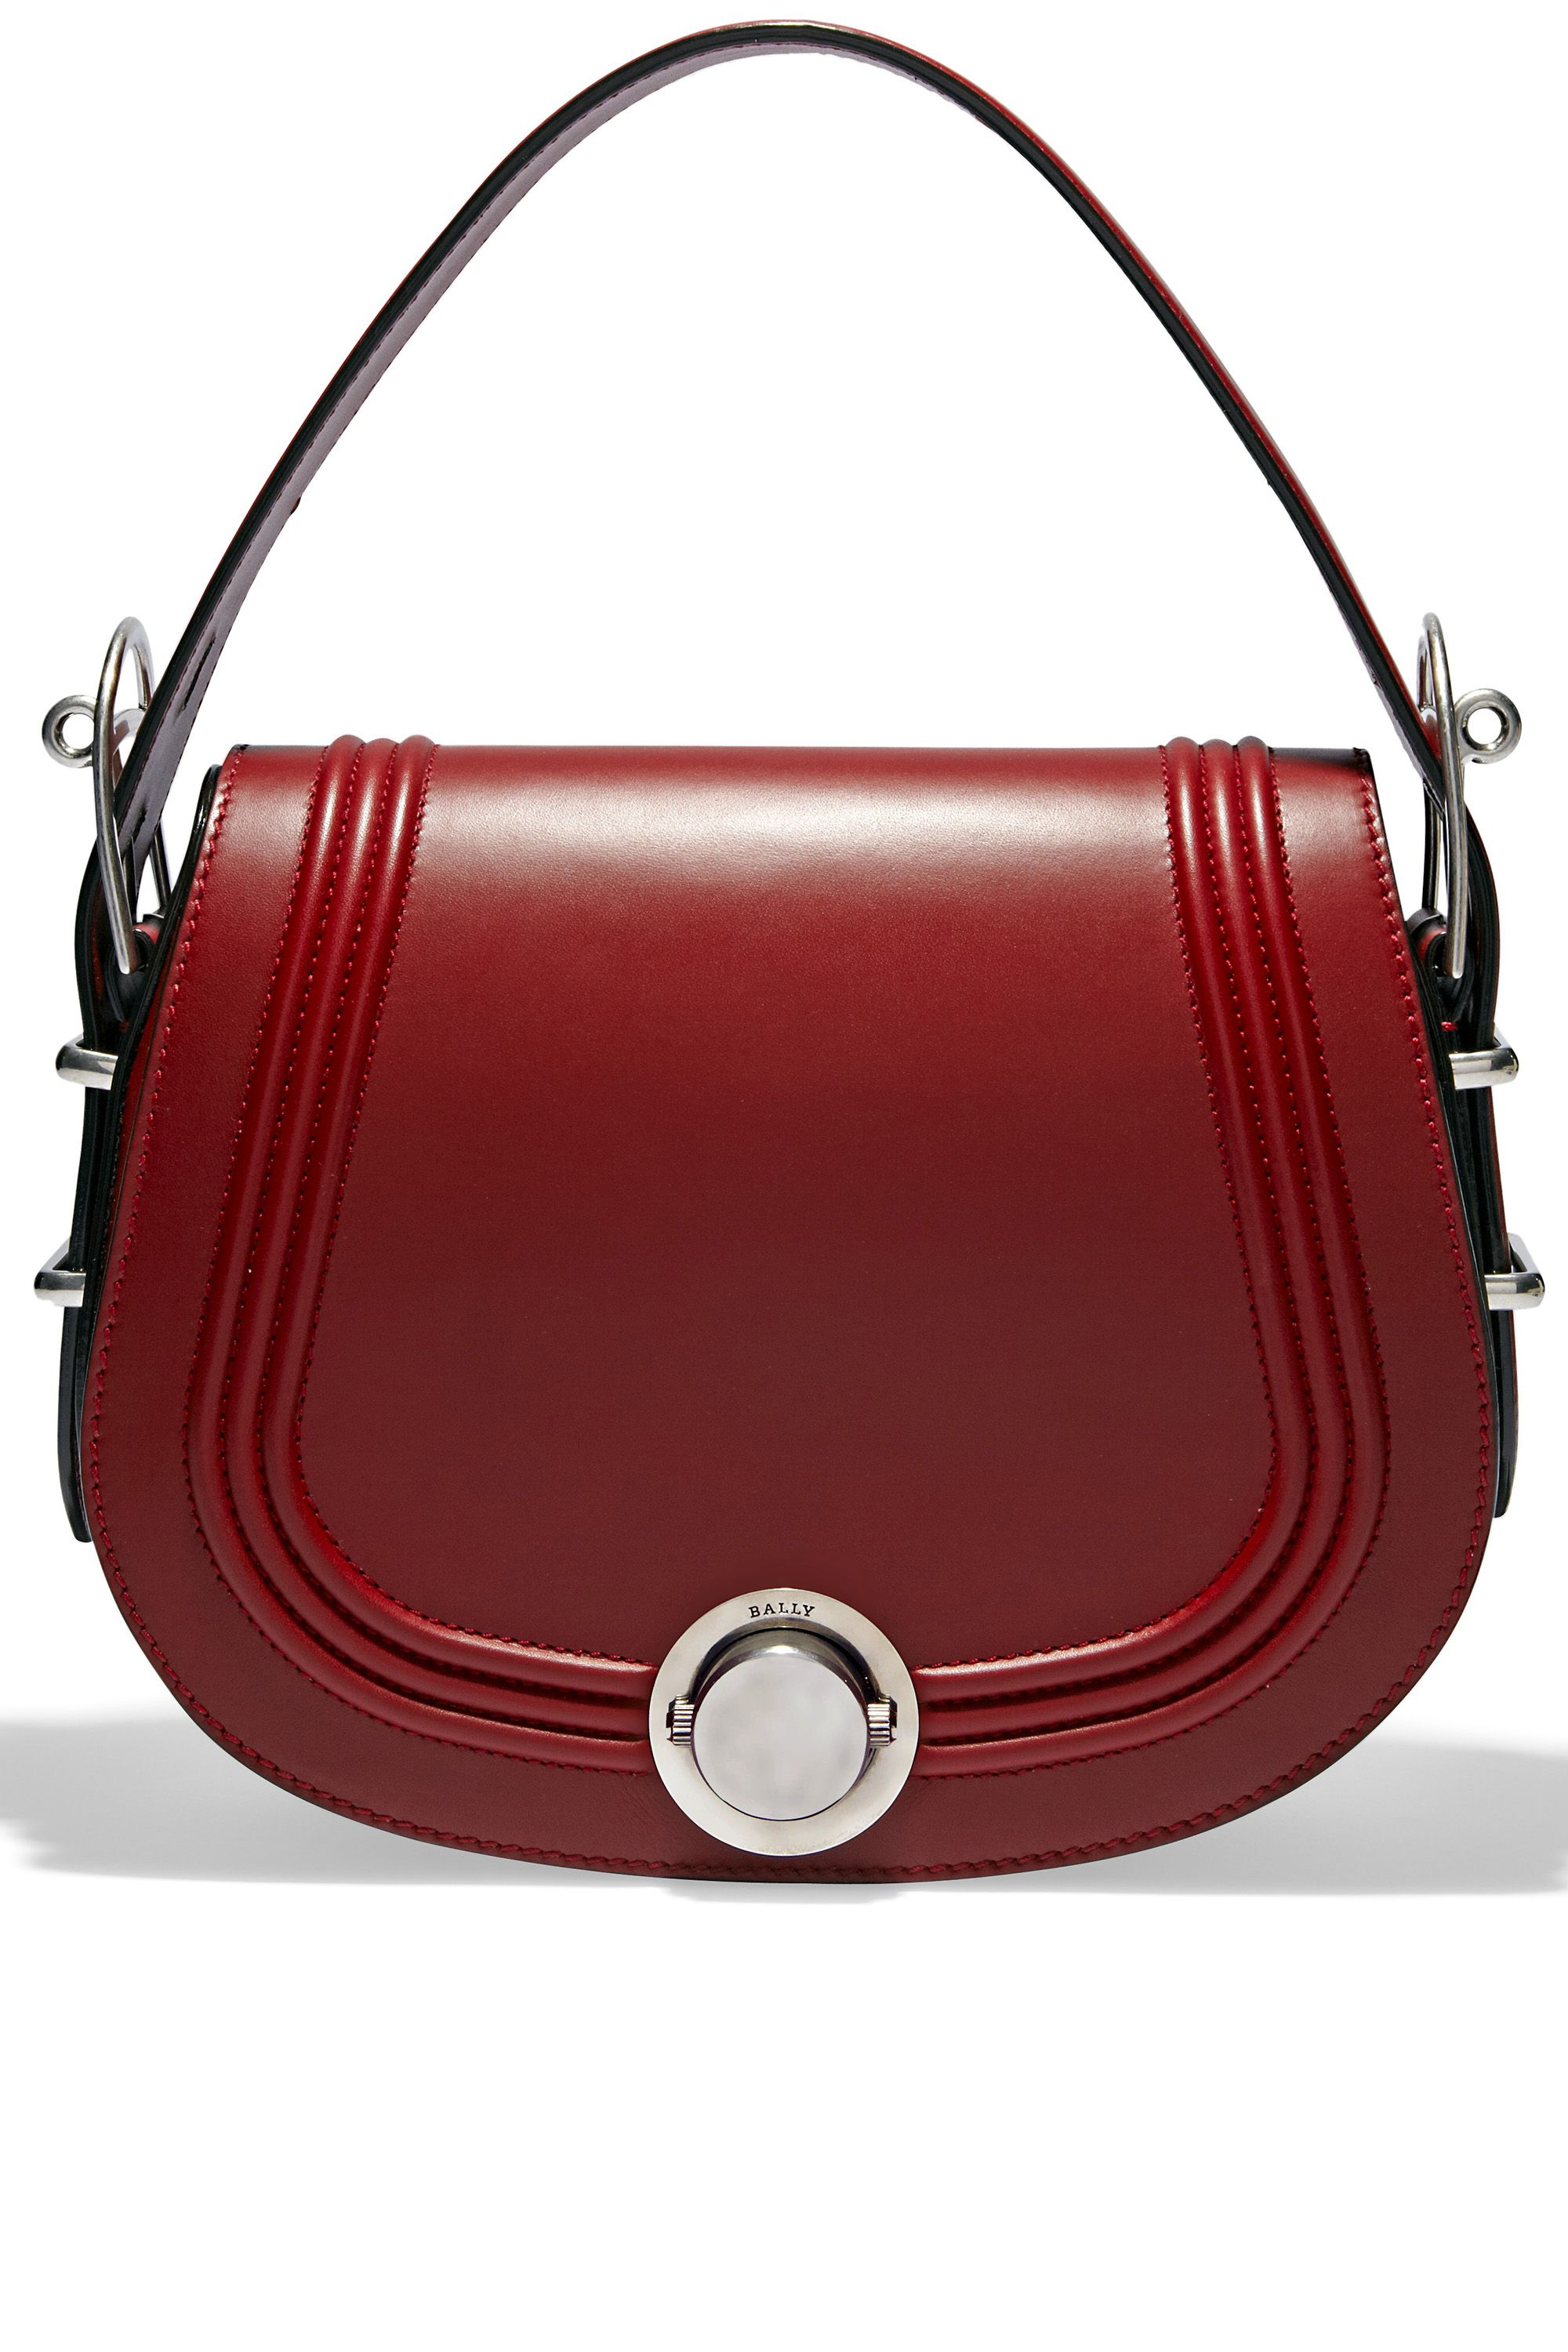 "<p><strong>Bally </strong>bag, $2,195, similar styles available at <a href=""https://shop.harpersbazaar.com/"" target=""_blank"">shopBAZAAR.com</a>.</p>"